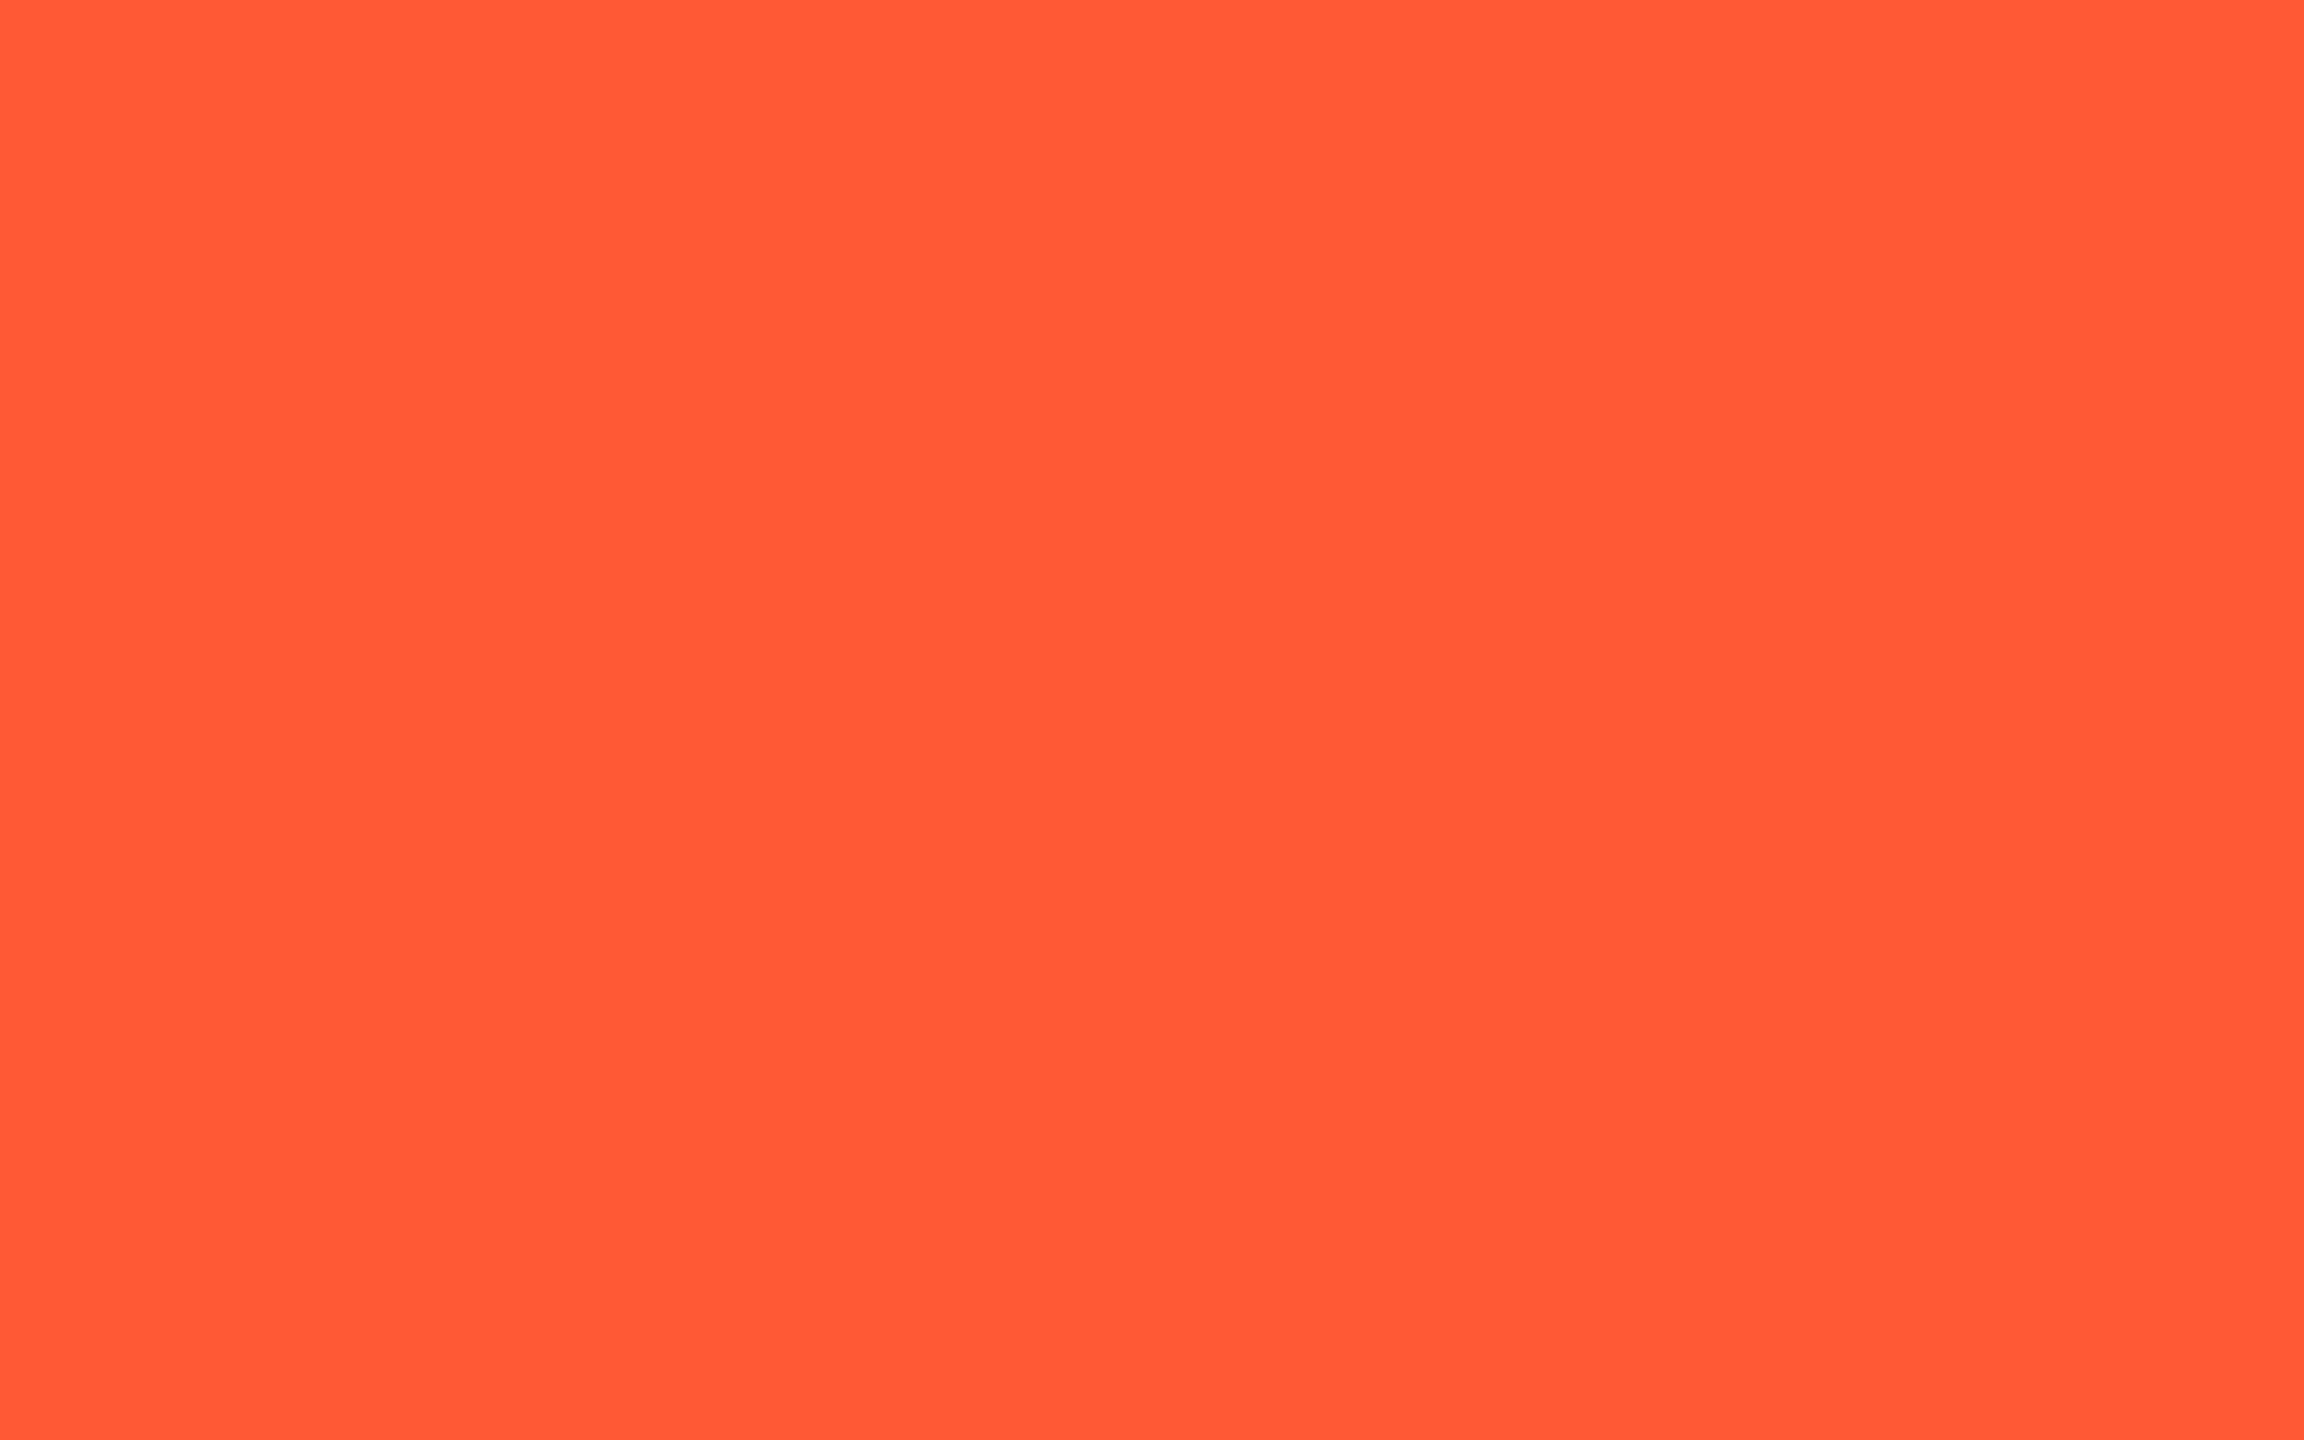 2304x1440 Portland Orange Solid Color Background